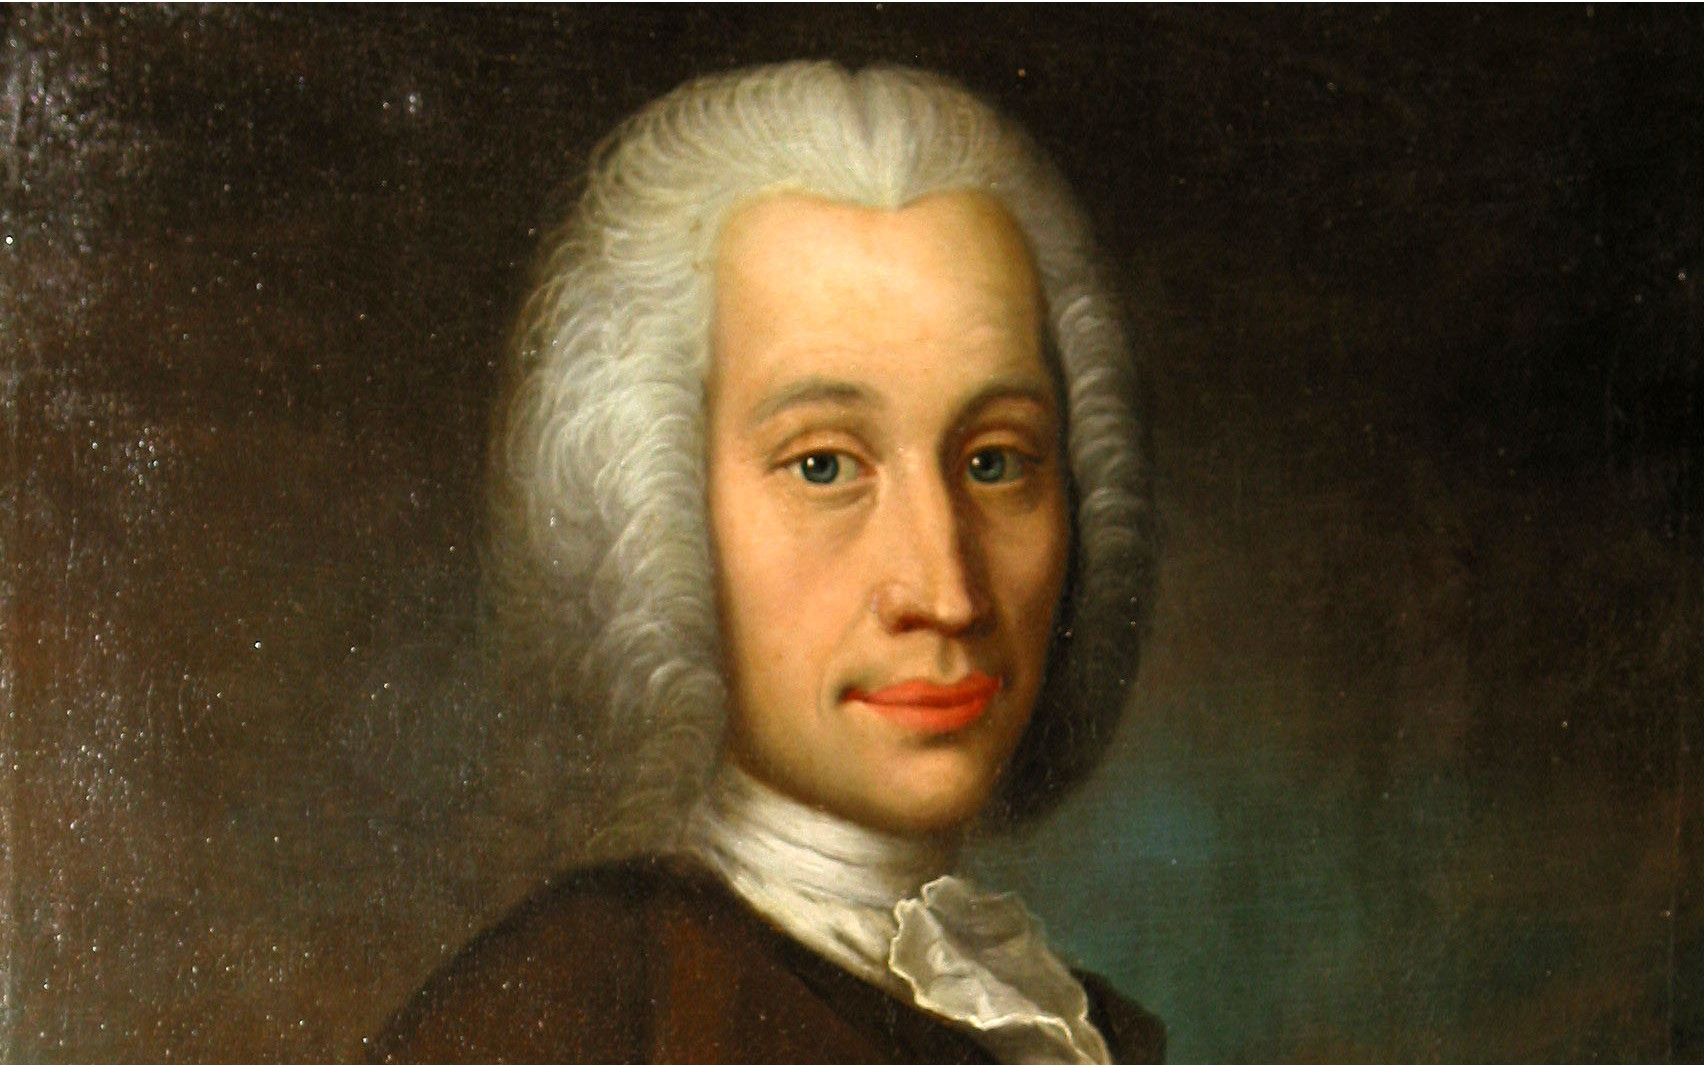 640px-Anders-Celsius